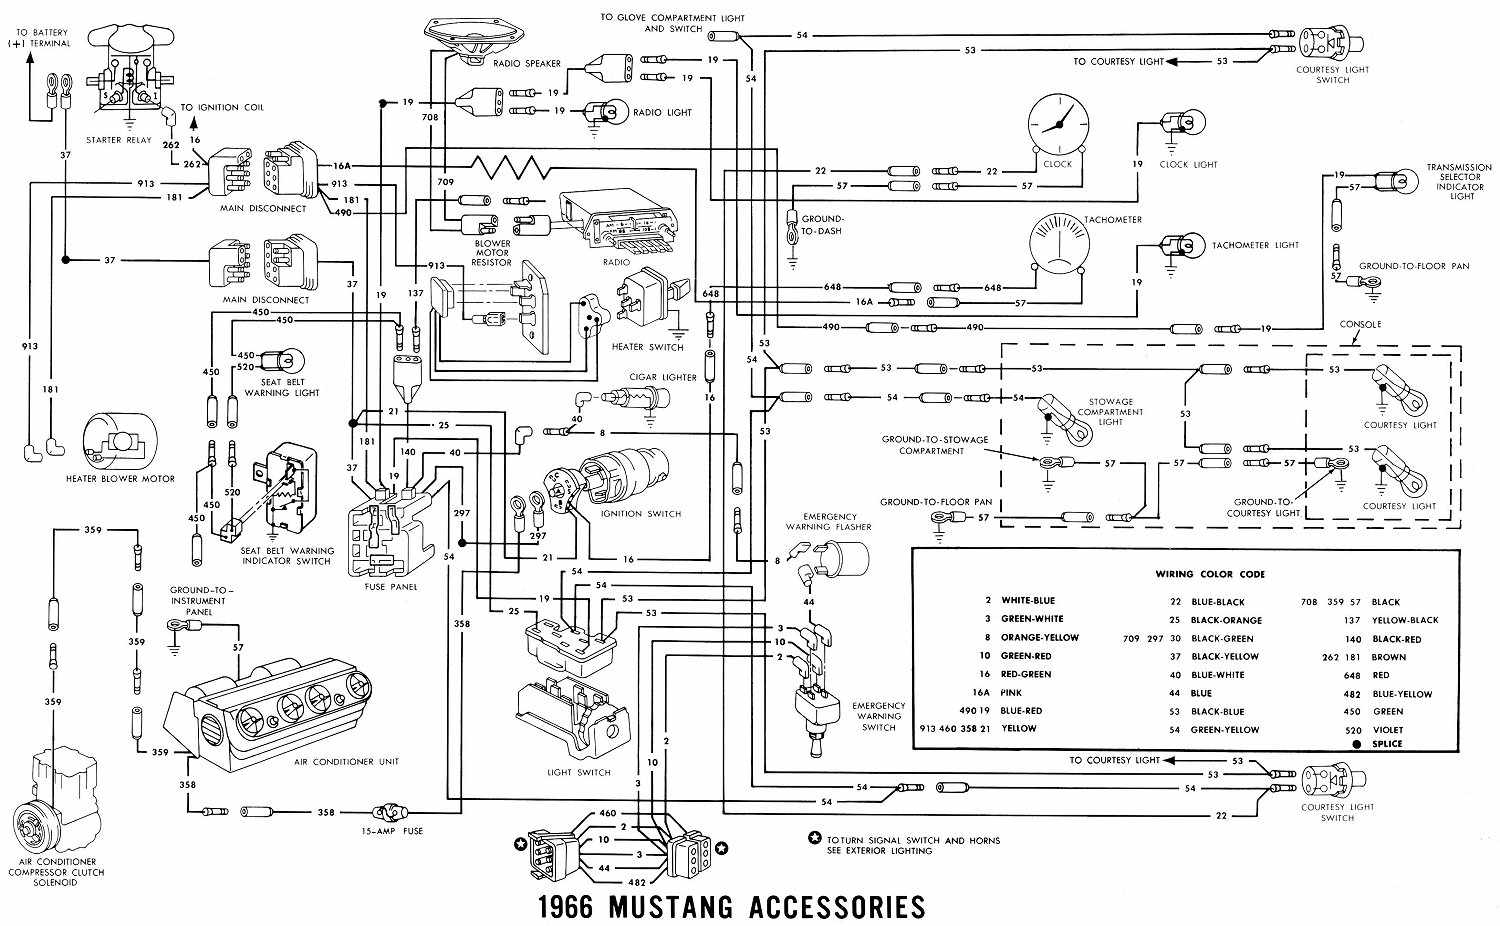 Accessories Electrical Wiring Diagrams on 1997 explorer speaker wiring diagram